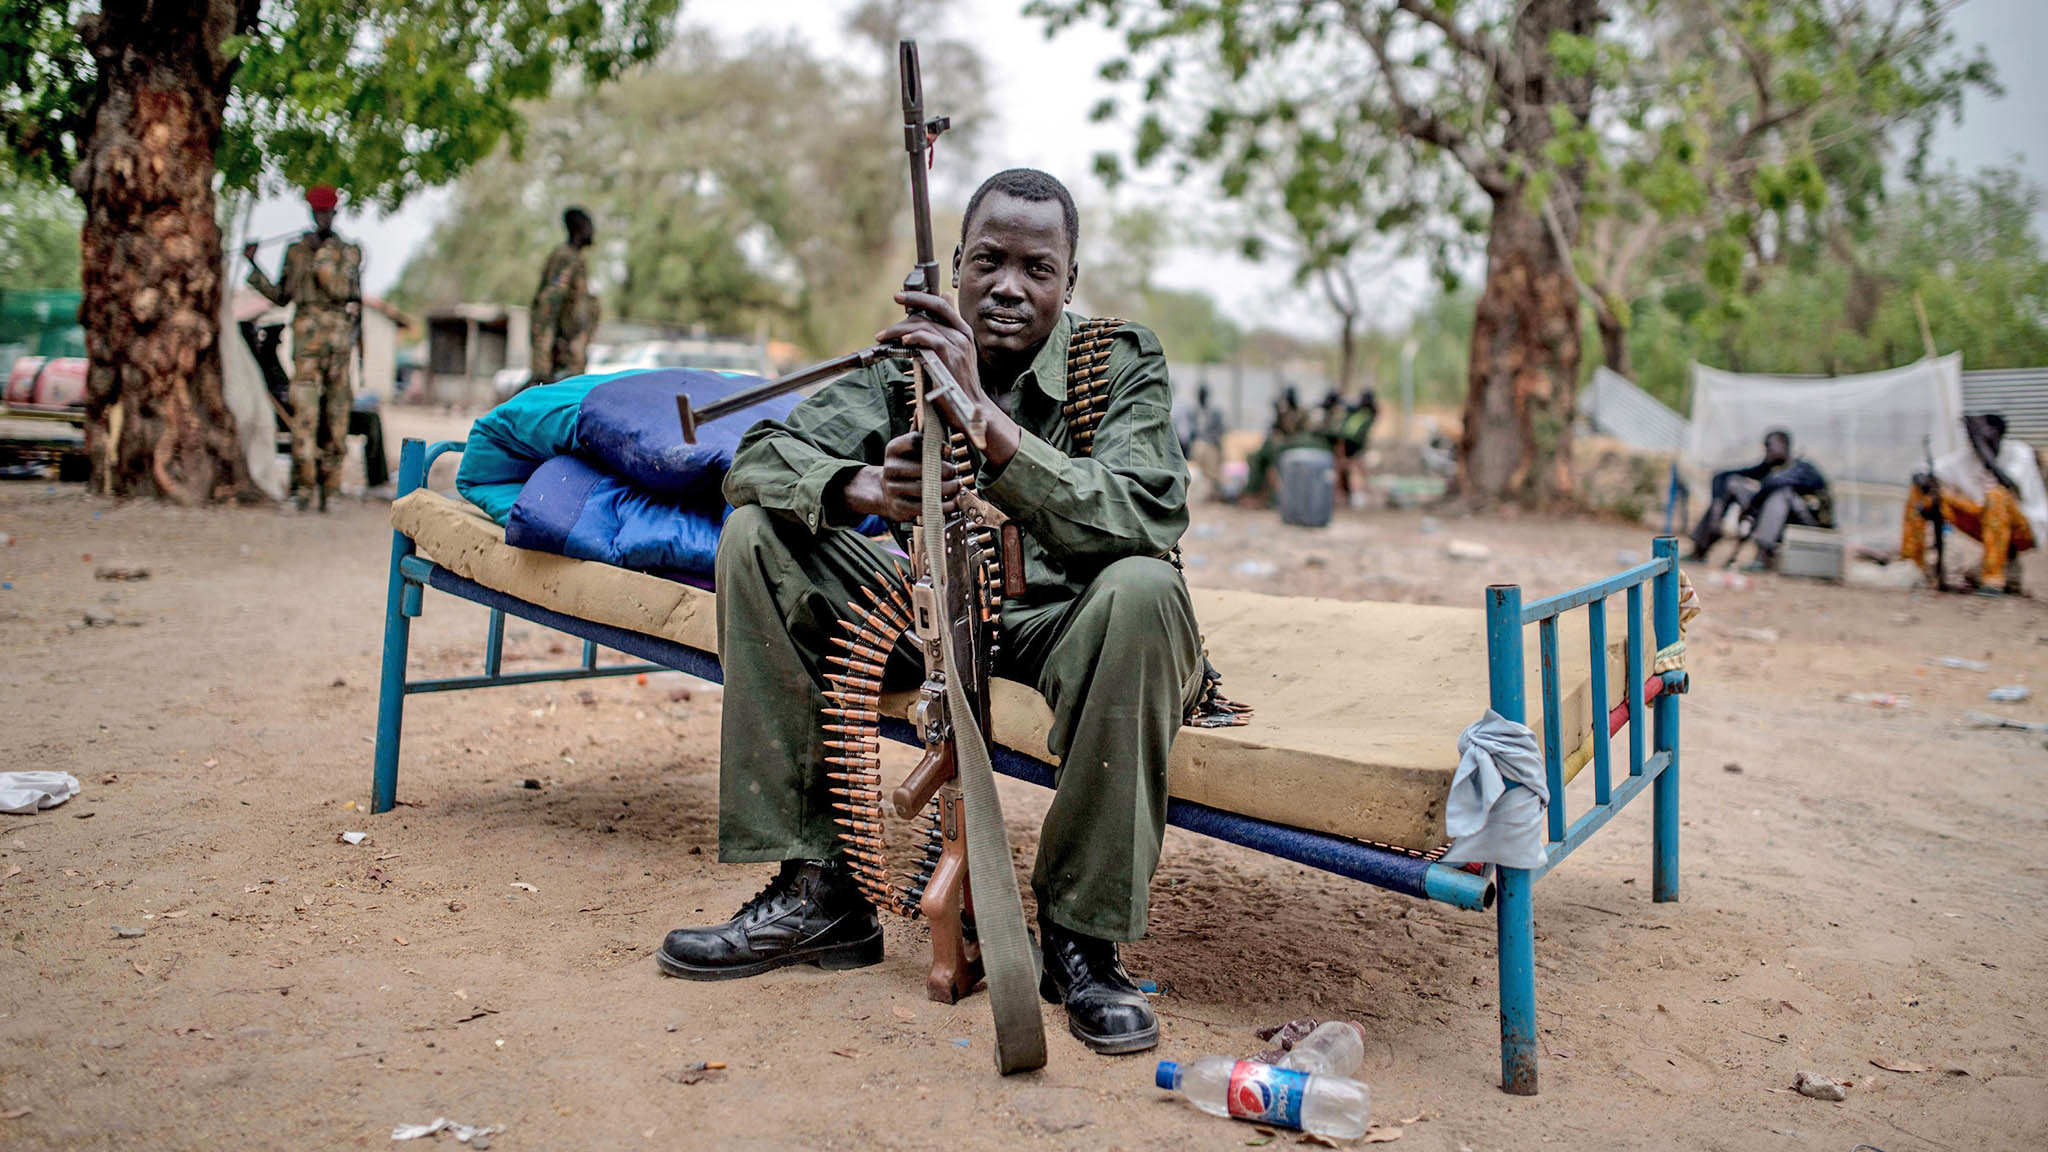 Unrest in South Sudan